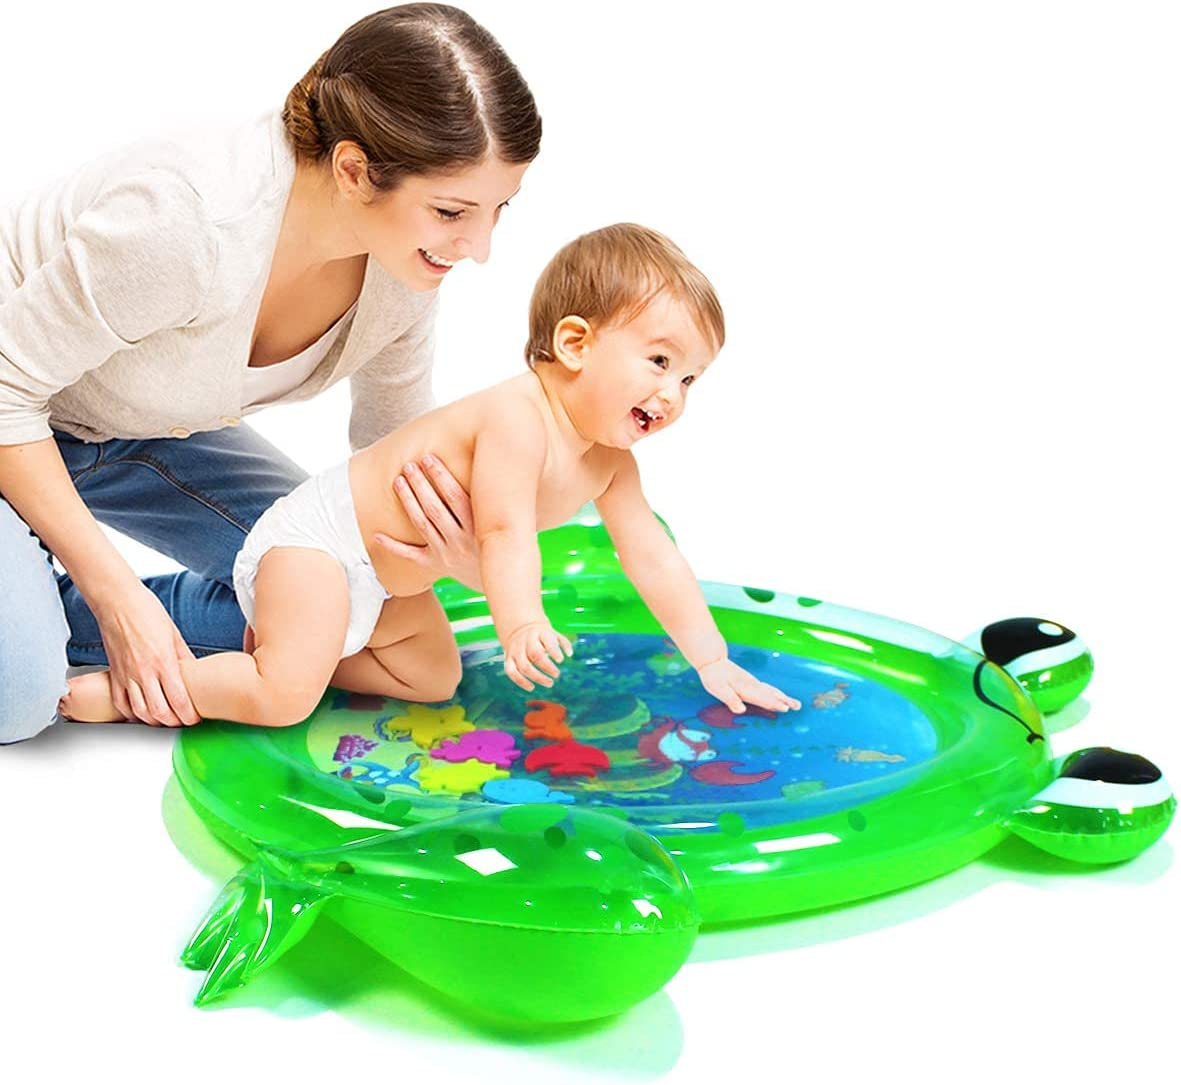 SUNSHINE-MALL Inflatable Frog Tummy Time for Baby, Premium Water mat Infants and Toddlers is The Perfect Fun time Play Activity Center Your Baby's Stimulation Growth(93x77cm)